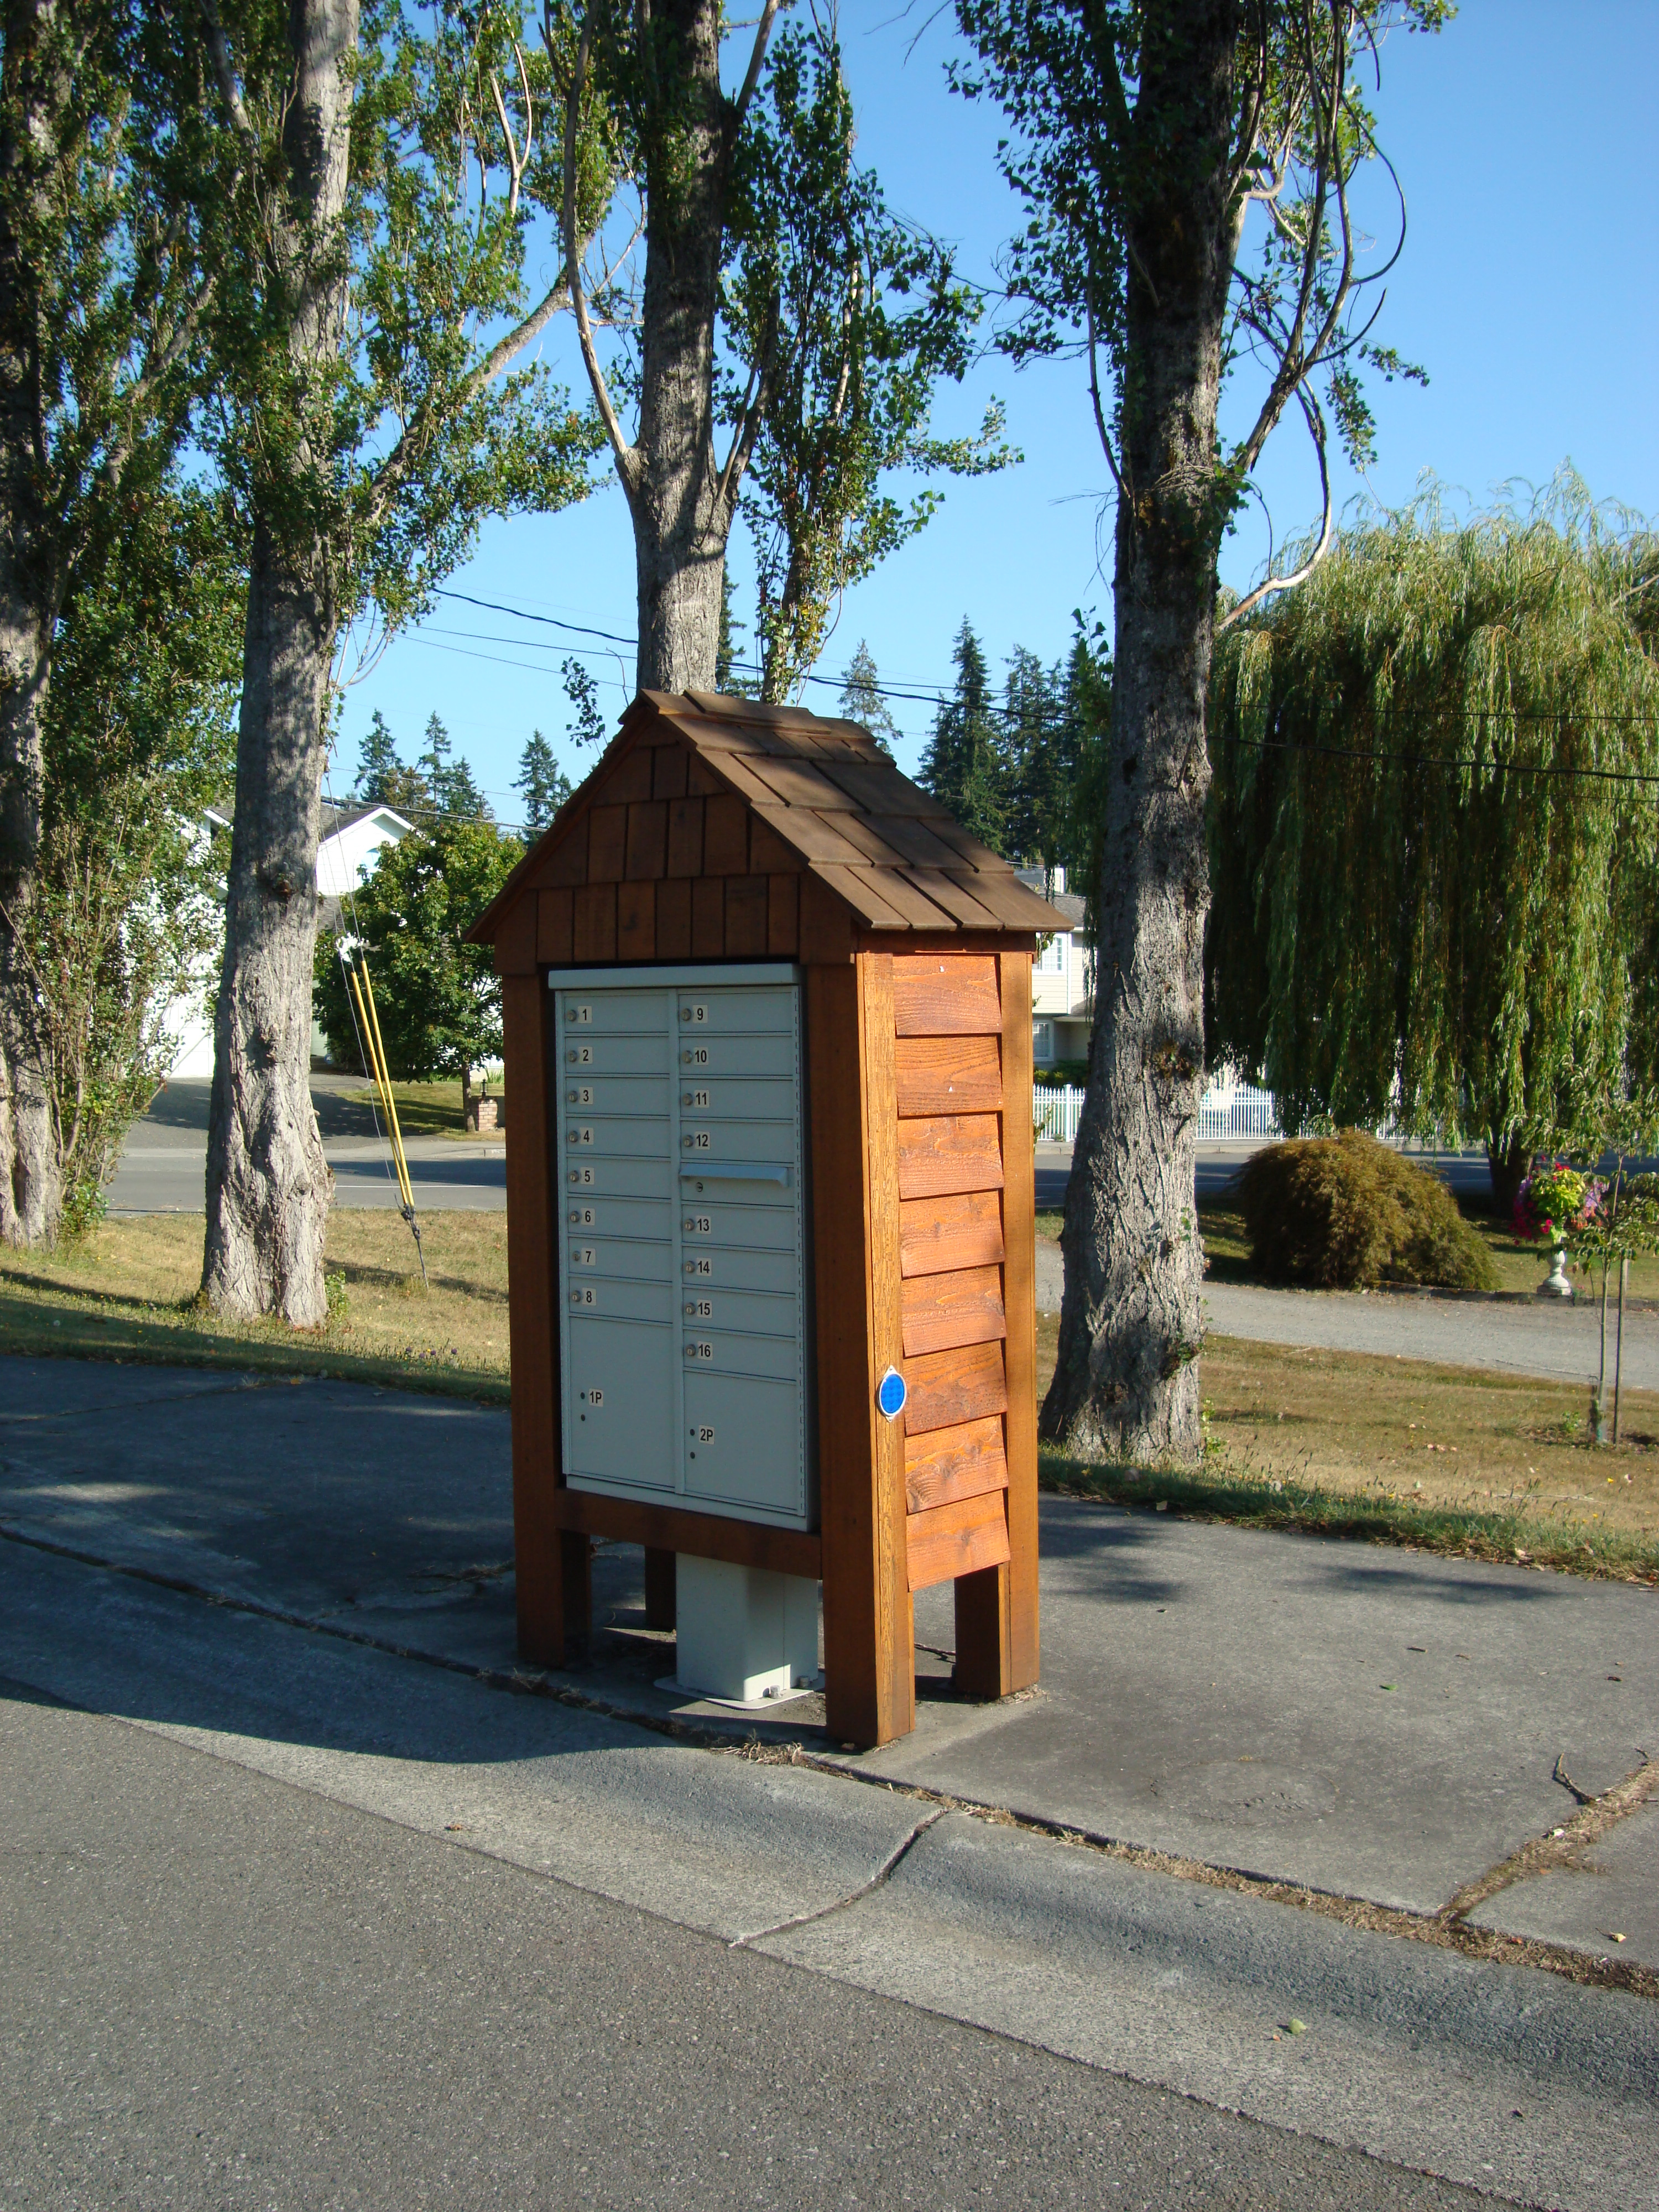 Mailbox Types Of Shelters : File customized mailbox g wikimedia commons